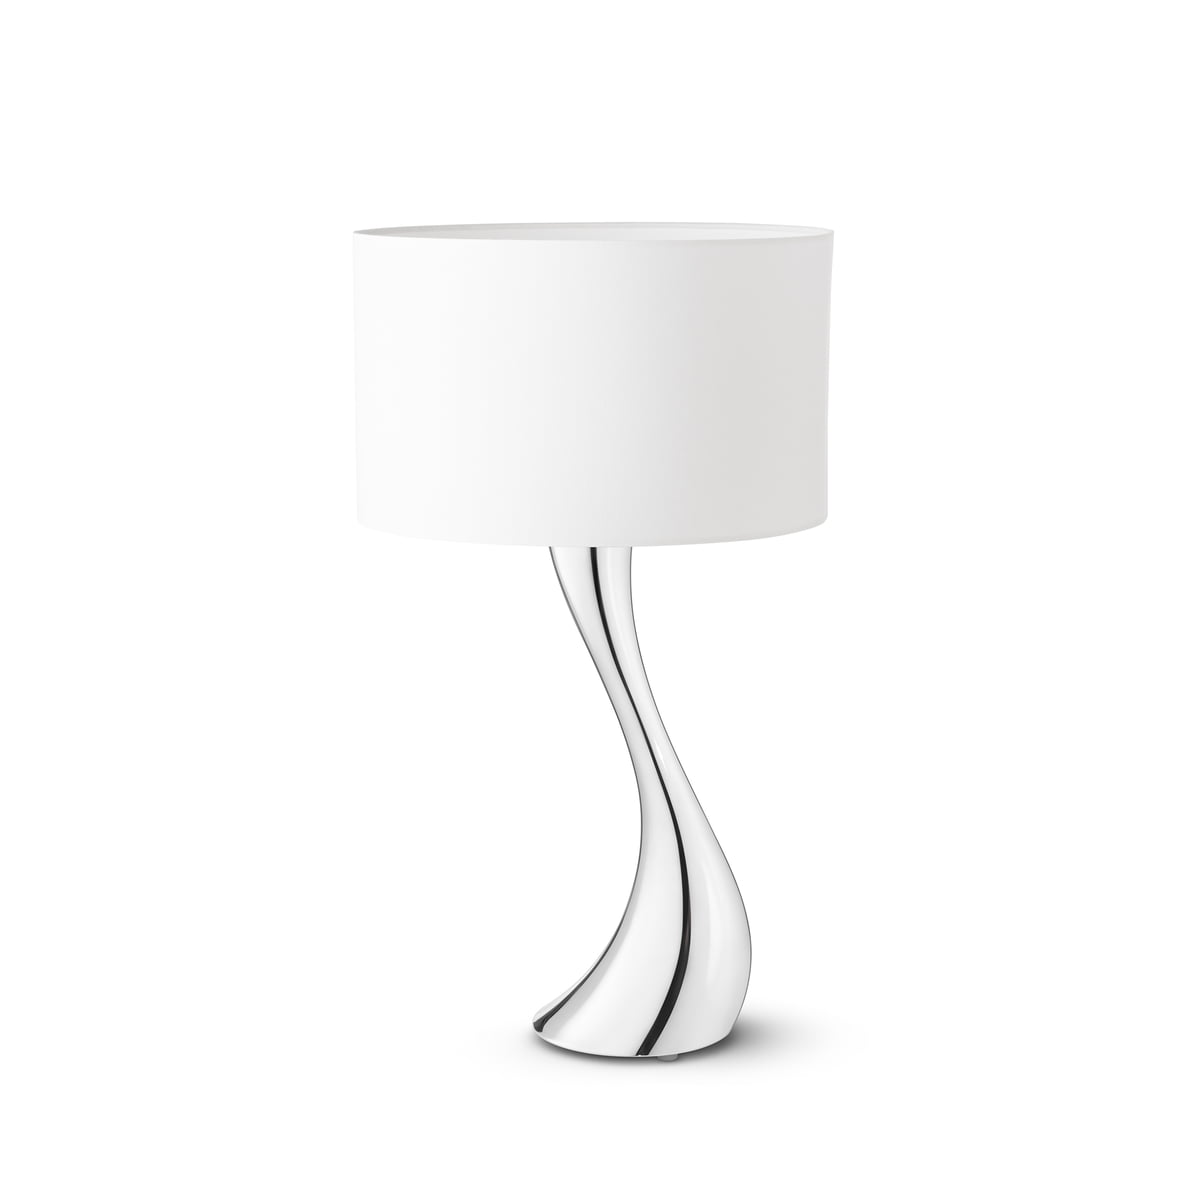 The cobra table lamp by georg jensen in the shop georg jensen cobra table lamp small white aloadofball Images